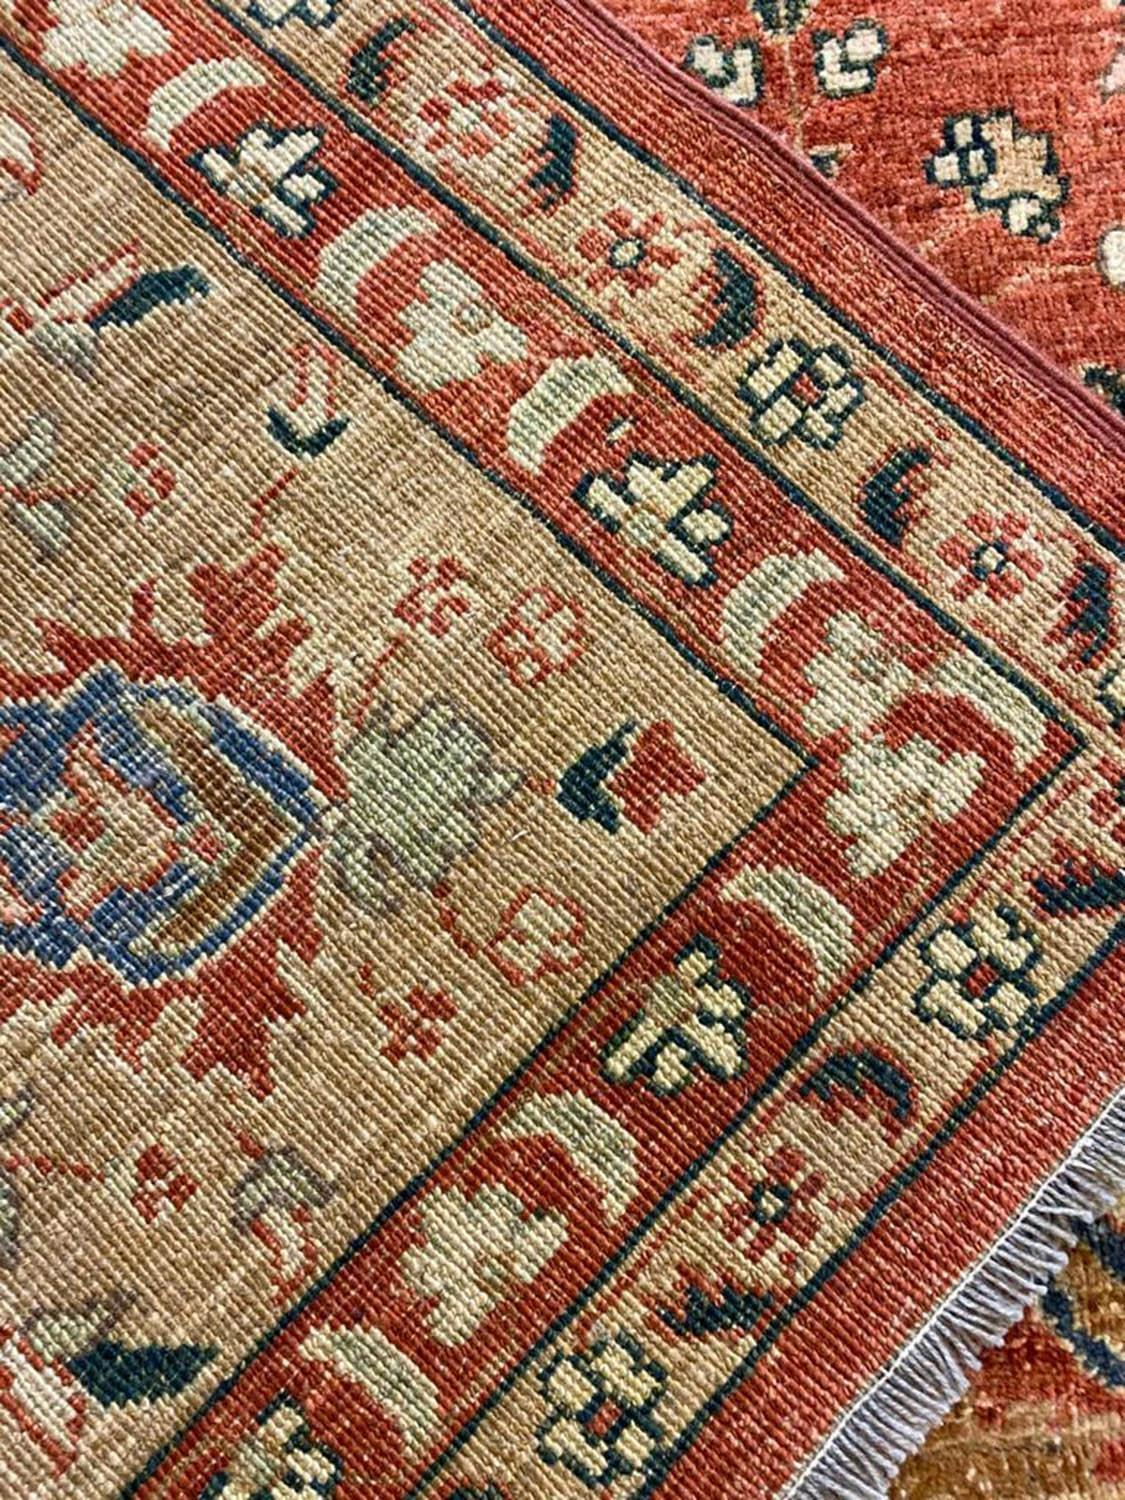 FINE BAKSHAISH DESIGN CARPET, 371cm x 273cm. - Image 2 of 5